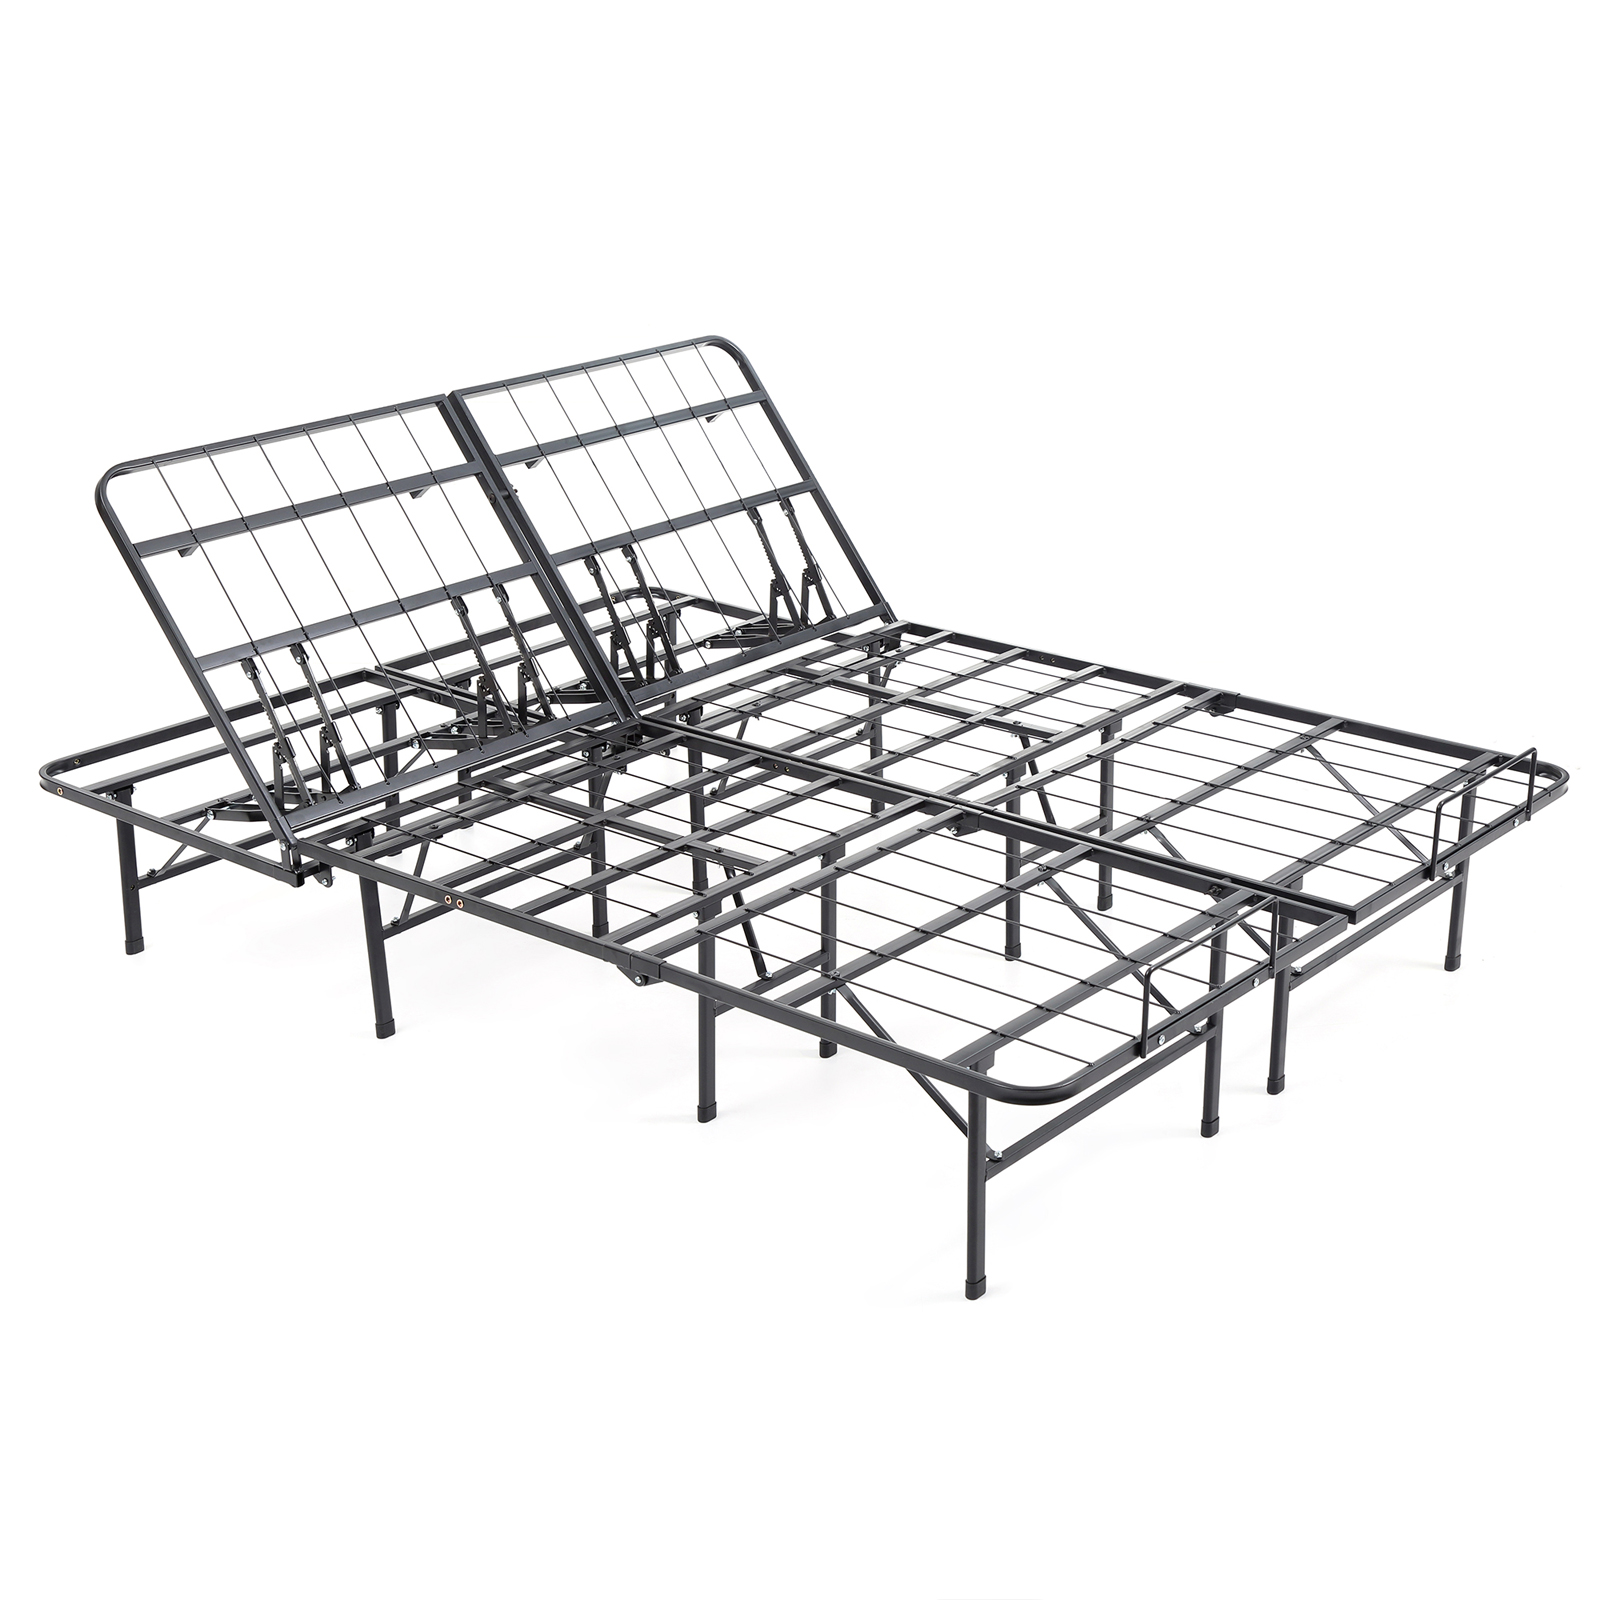 Classic Brands Adjustable 14 In Heavy Duty Metal Bed